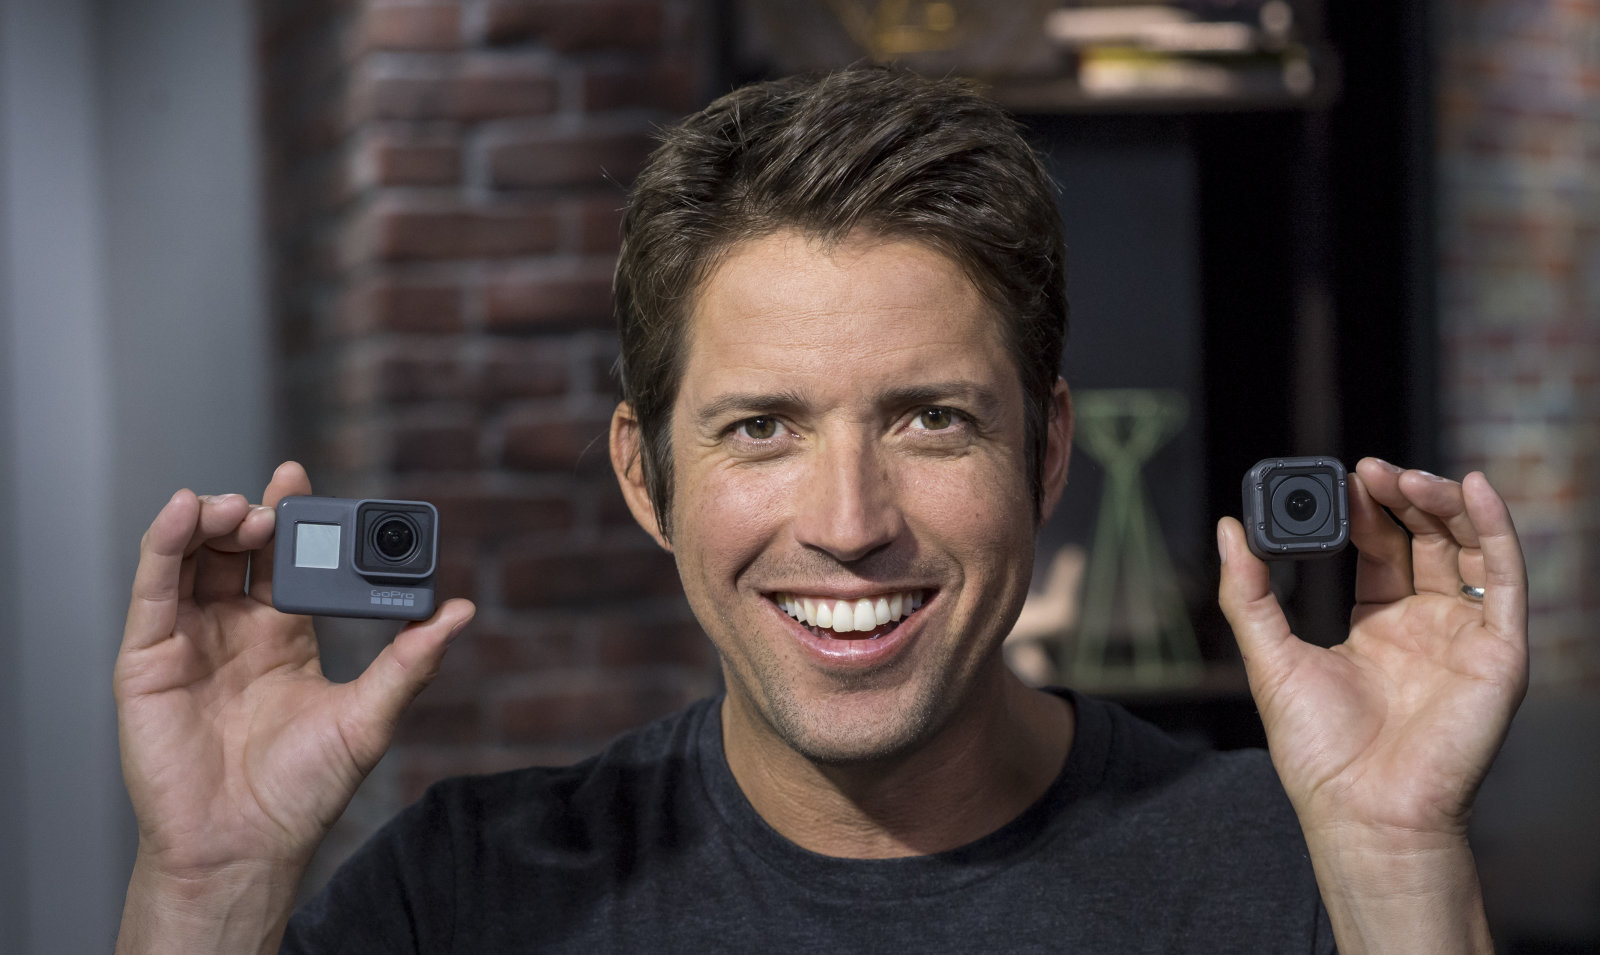 GoPro's Nick Woodman confirms he's 'open' to selling | Engadget